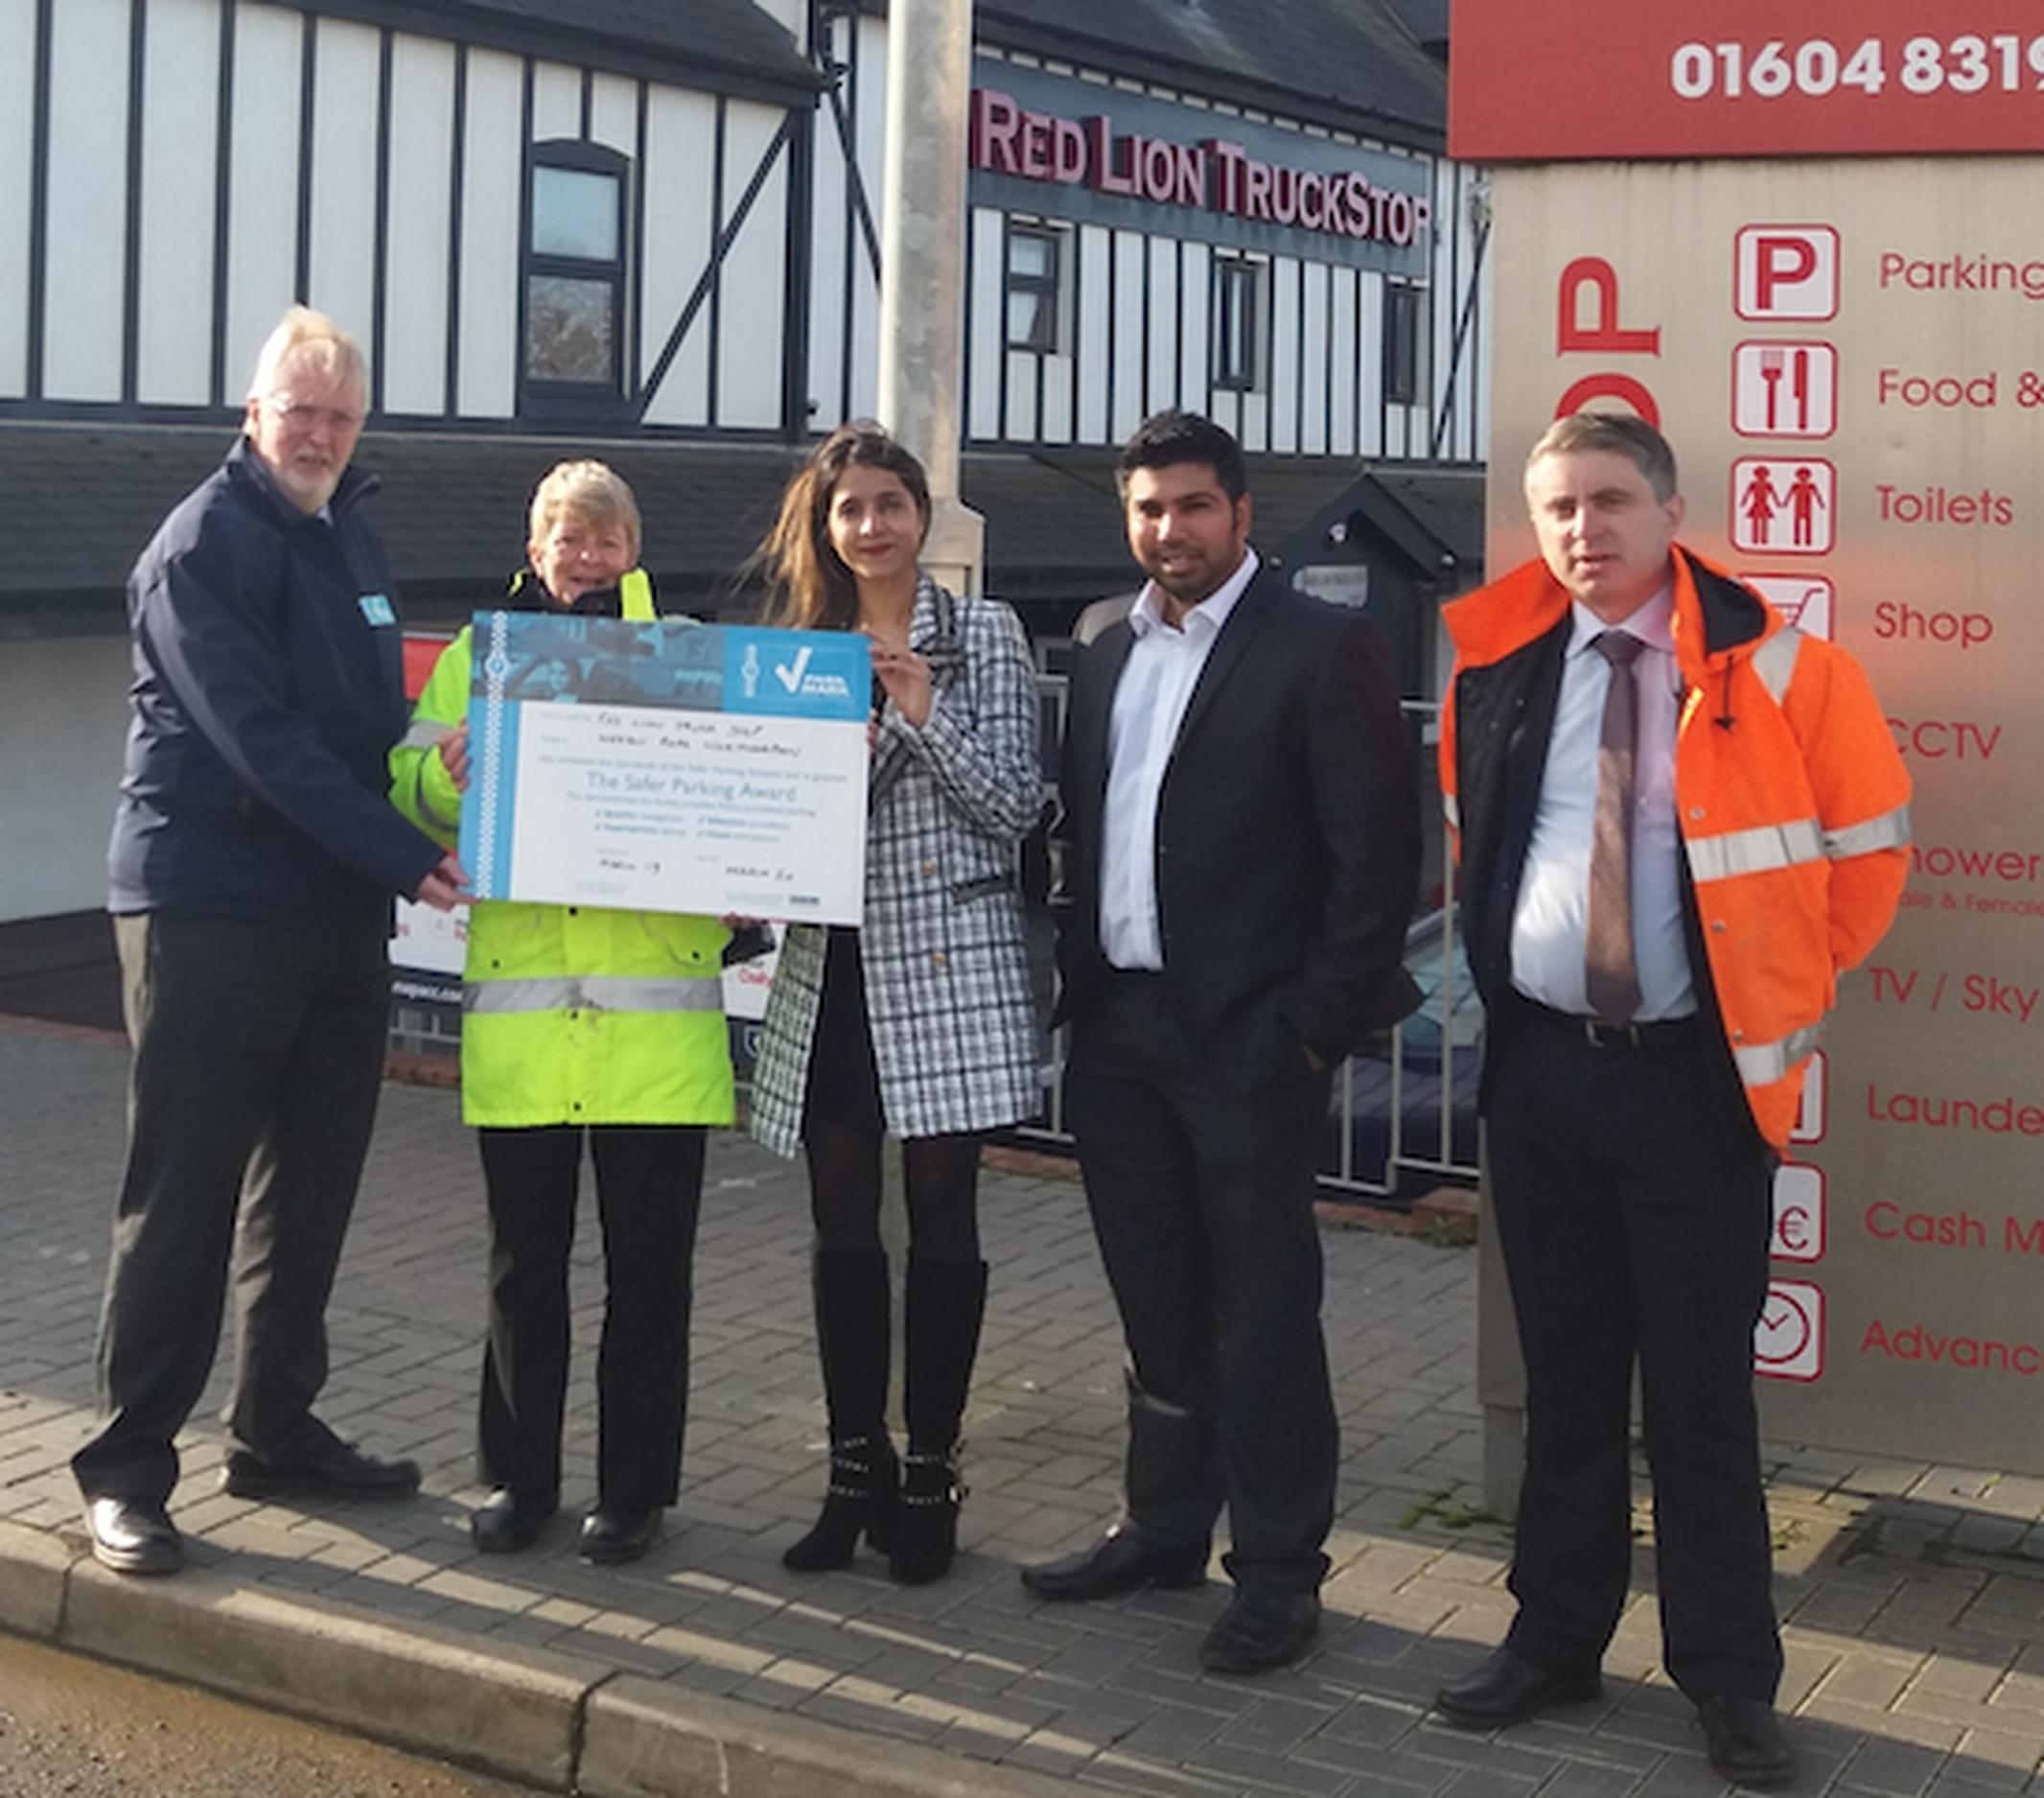 Peter Gravells (BPA), Sharon Henley (Northamptonshire Police), Zarfeen Sadrudin and Ali Sadrudin (Red Lion Truck Stop) and Robert Hunt (ESR Electrical)